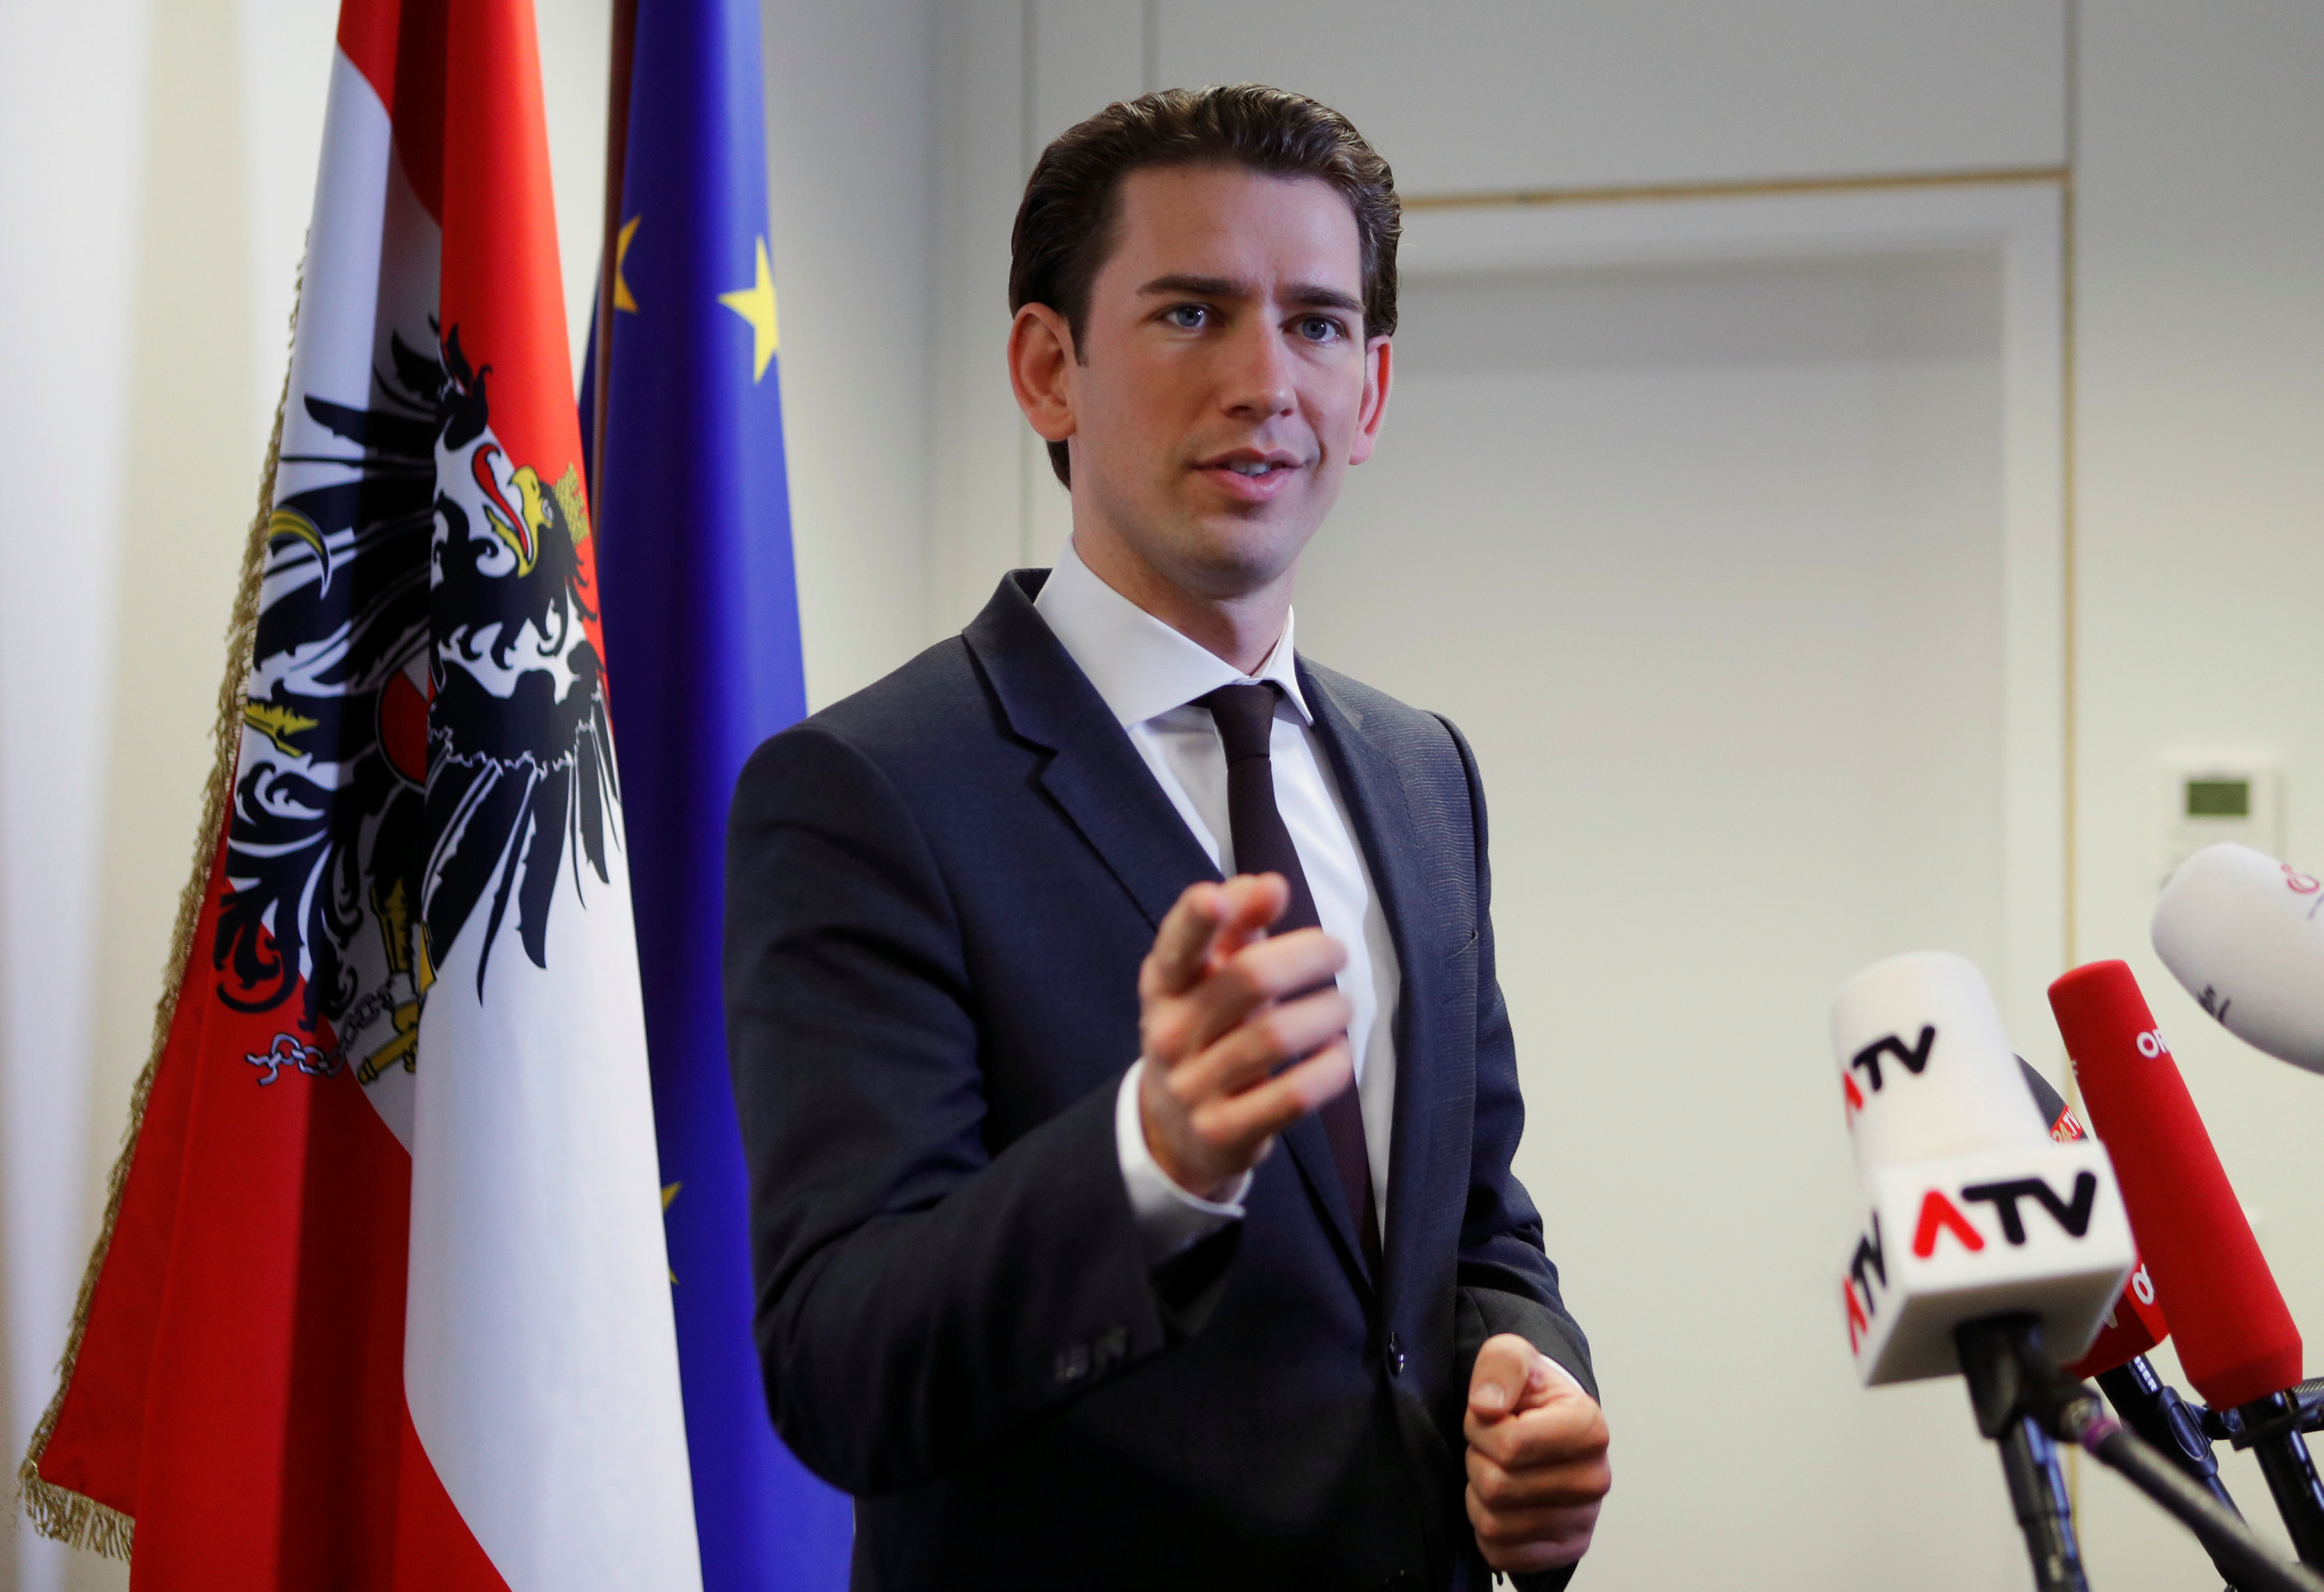 Austria's likely next chancellor hopes to form government in 60 days